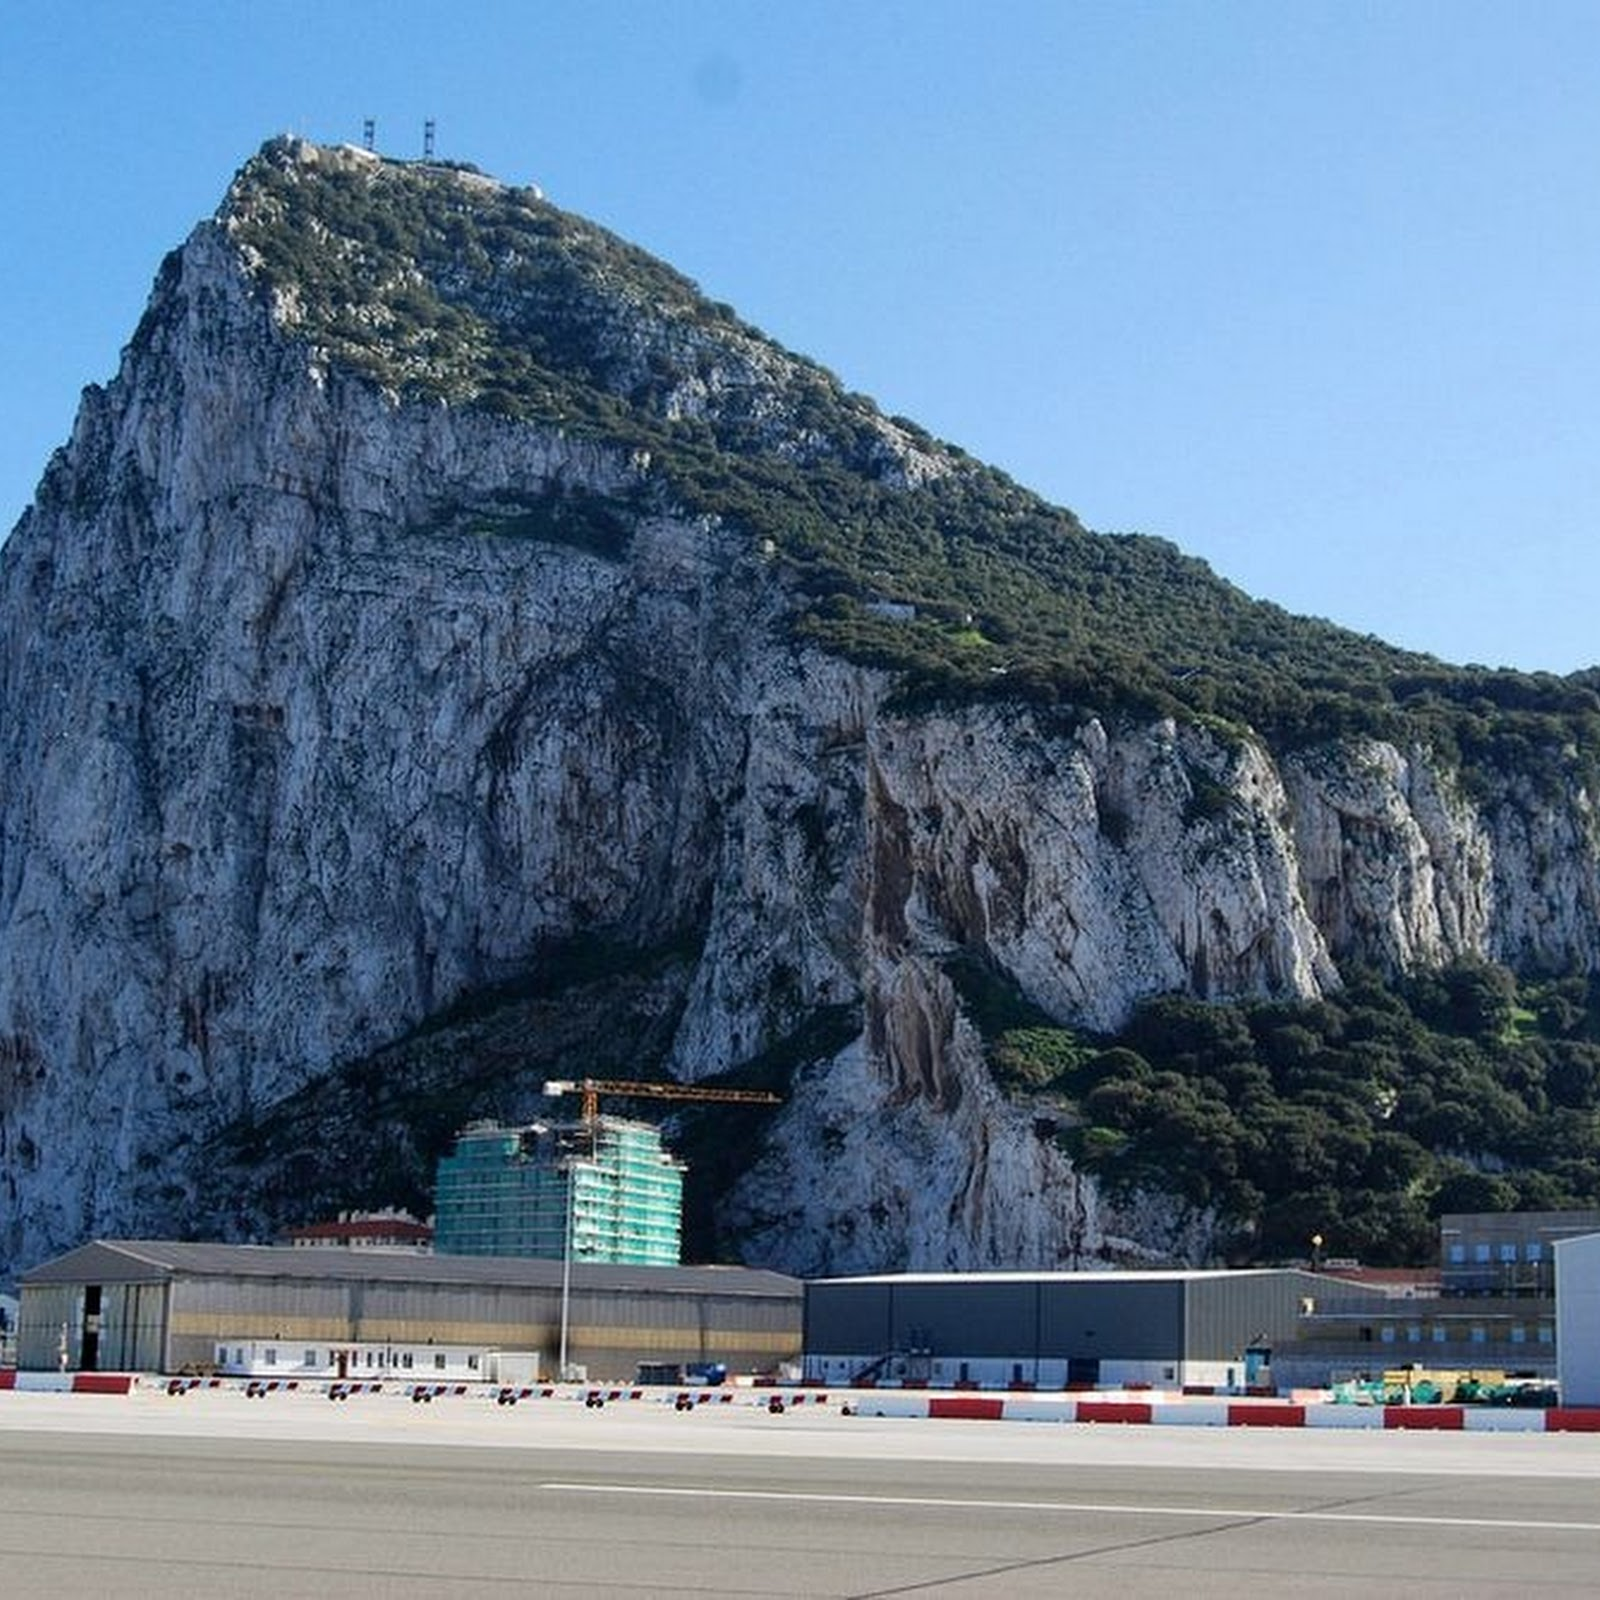 The Secret Plan To Bury Soldiers Alive Inside The Rock Of Gibraltar